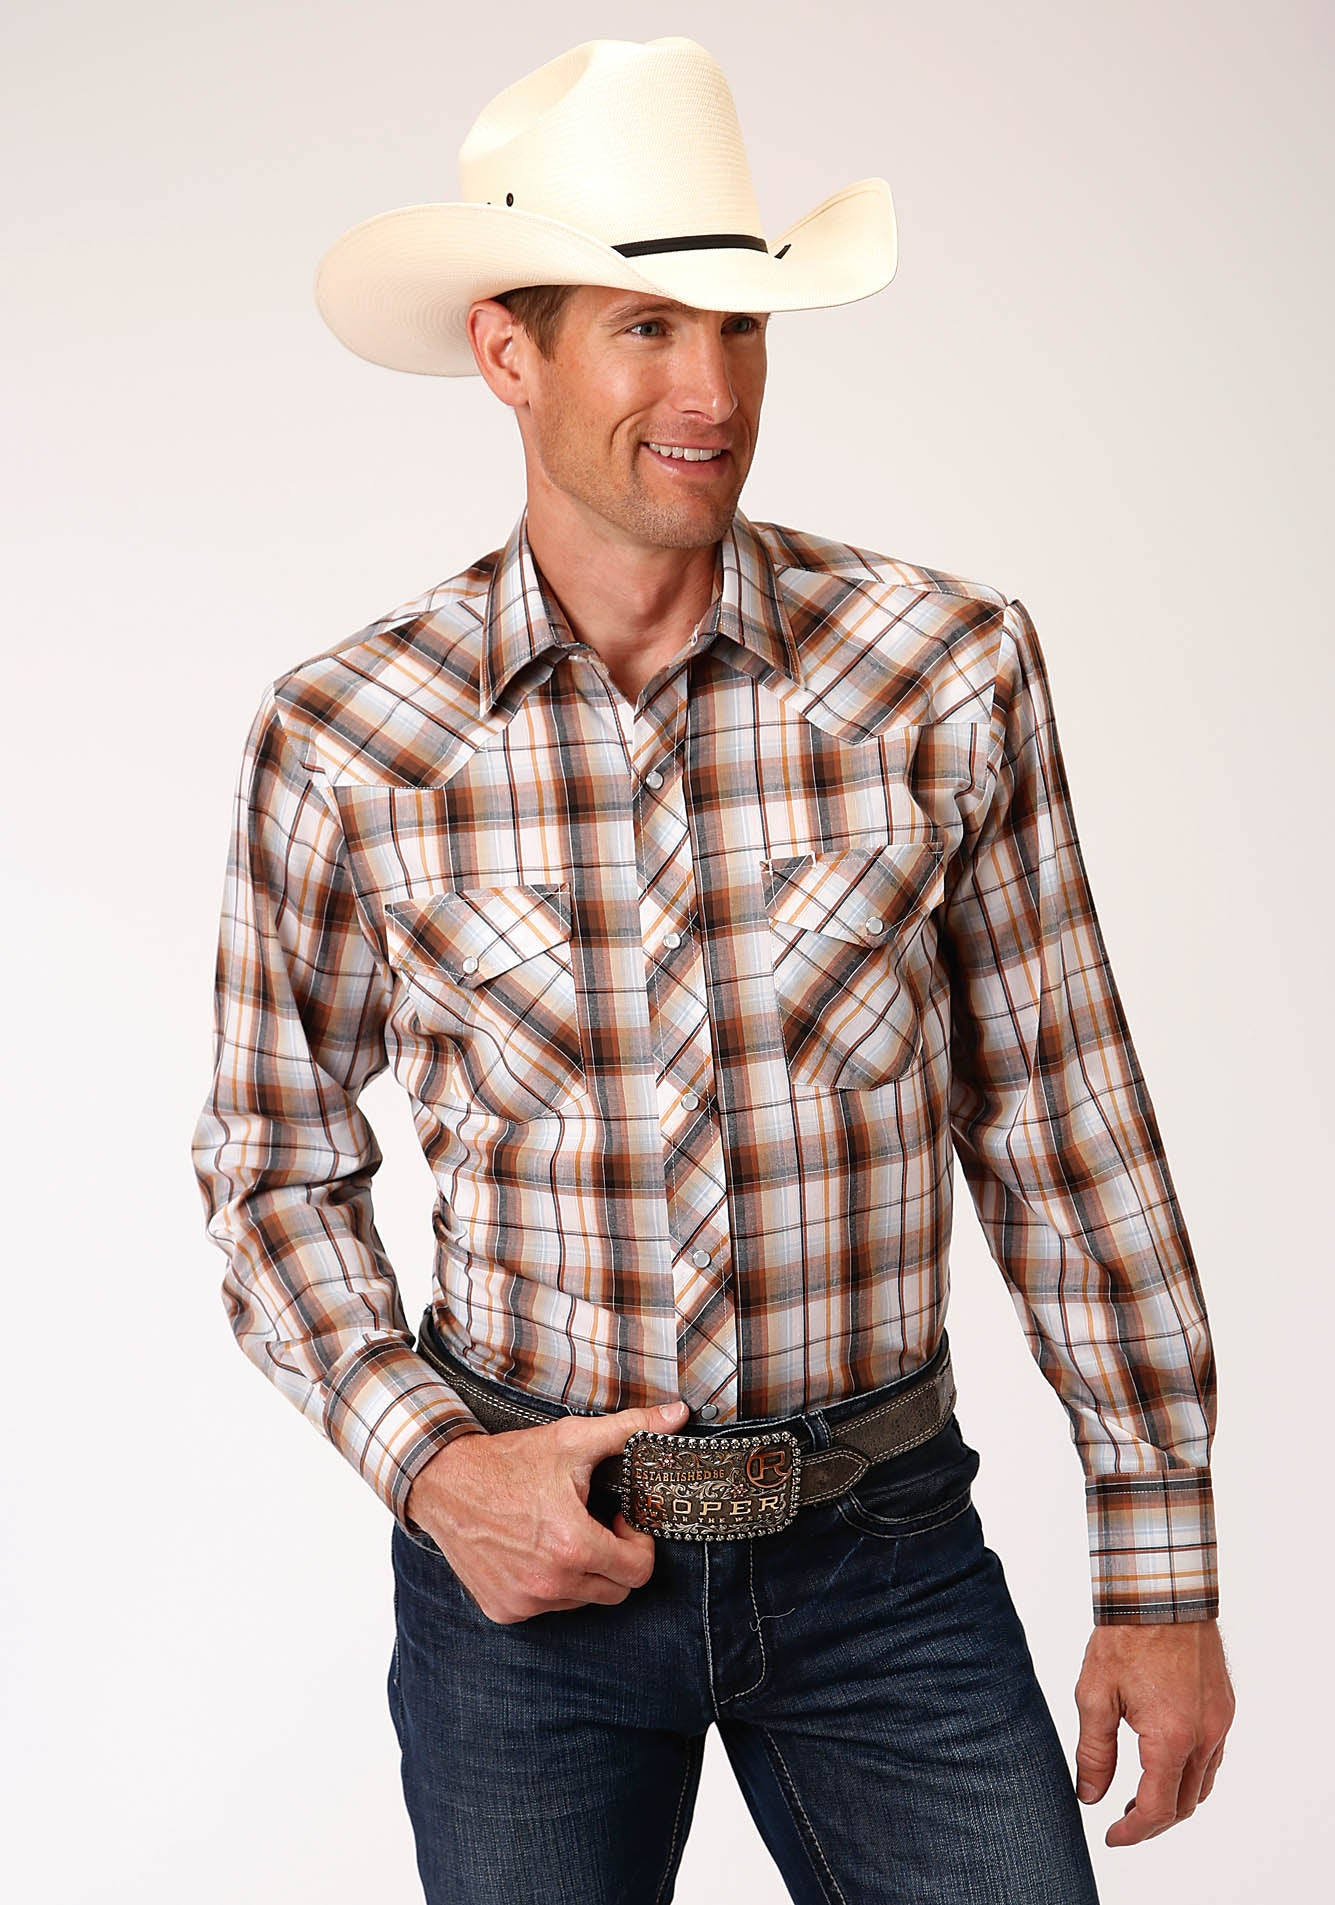 ROPER MENS WHITE 00206 WHITE, BROWN, BLACK & ORANGE PLD KARMAN CLASSICS- 55/45 PLAIDS LONG SLEEVE